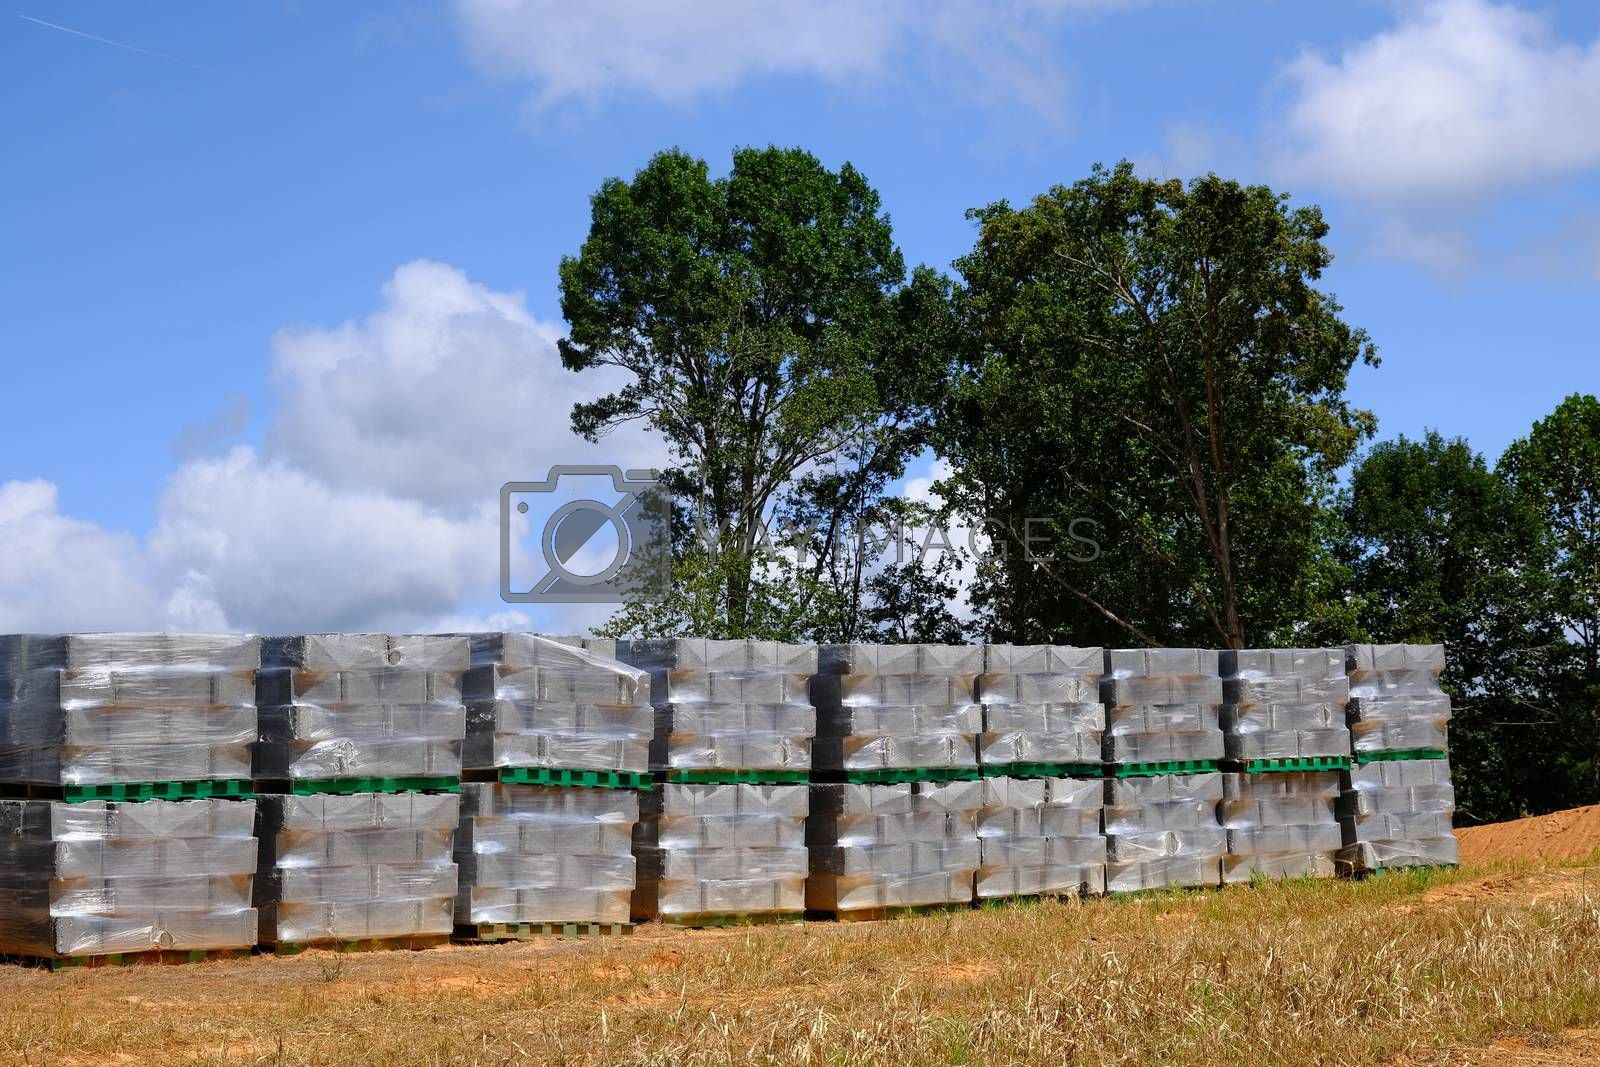 Construction Blocks Wrapped in Plastic at a Residential Construction Site